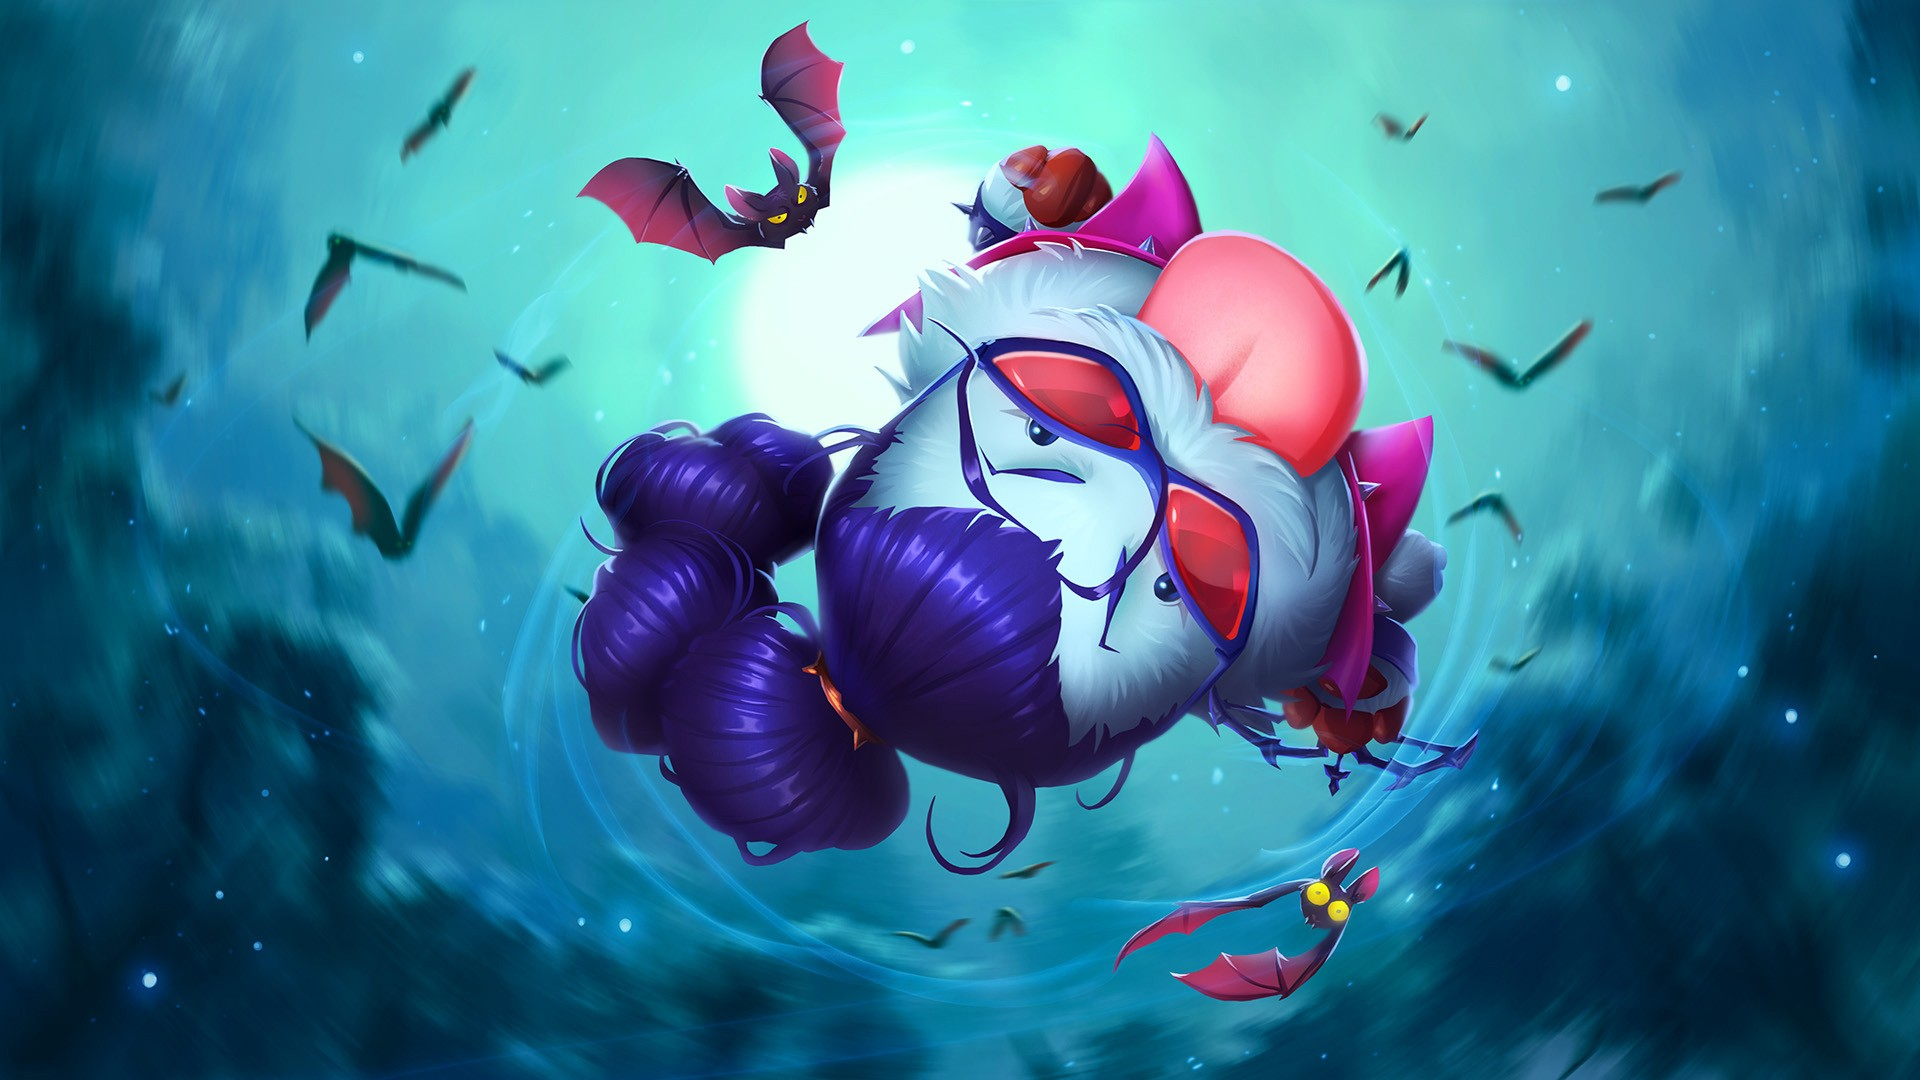 Vayne Poro wallpaper